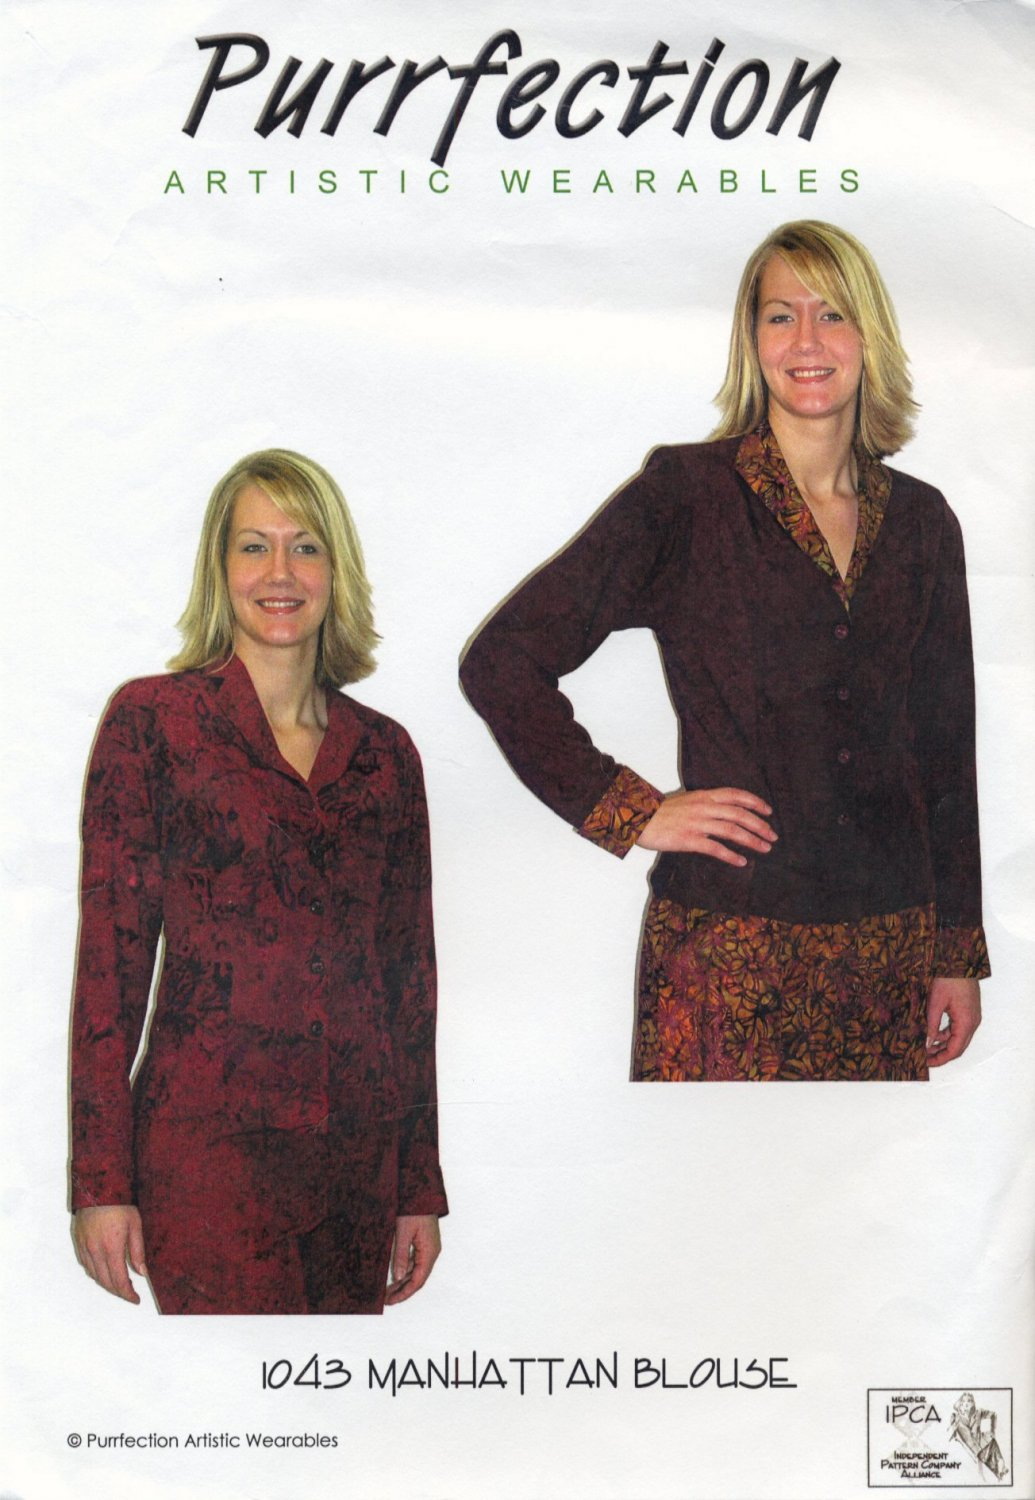 """Purrfection Artistic Wearables 1043 Manhattan Blouse Sewing Pattern - Sizes XS-5X Bust 30""""-62"""""""